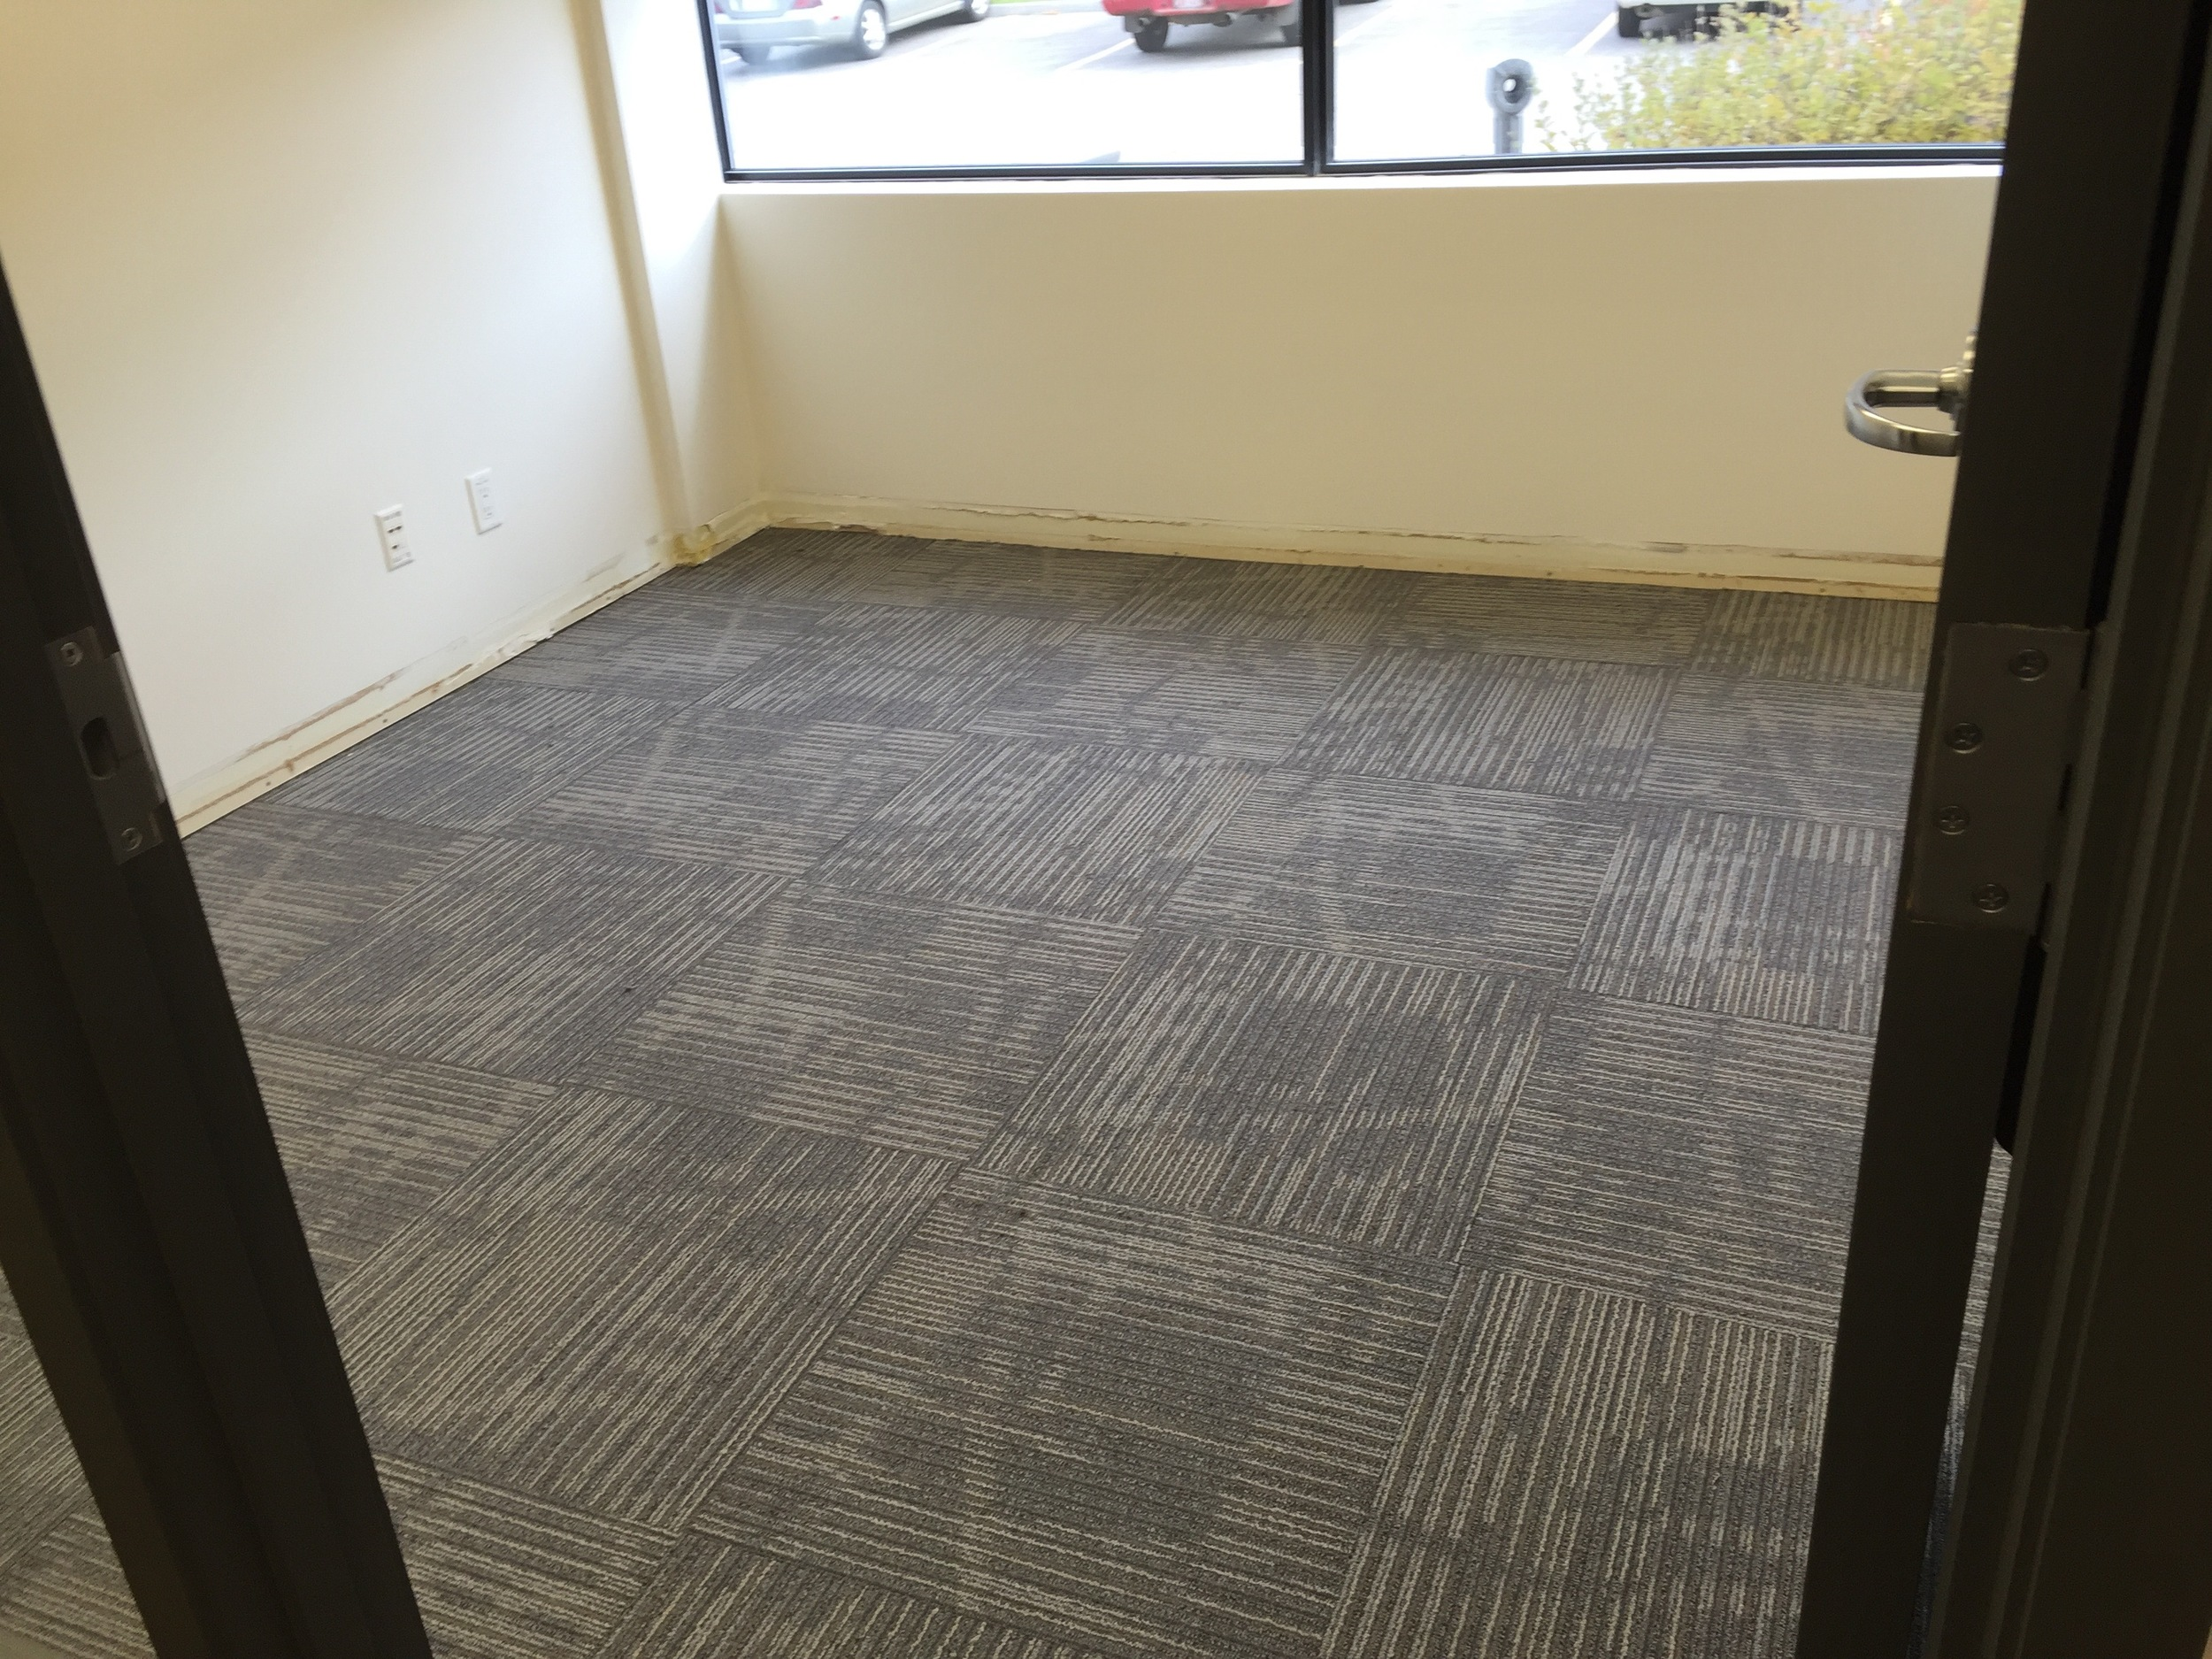 FC08  Floor Coverings - General Contractors Commercial Renovations in Edmonton, Office and Warehouse Project Contractors